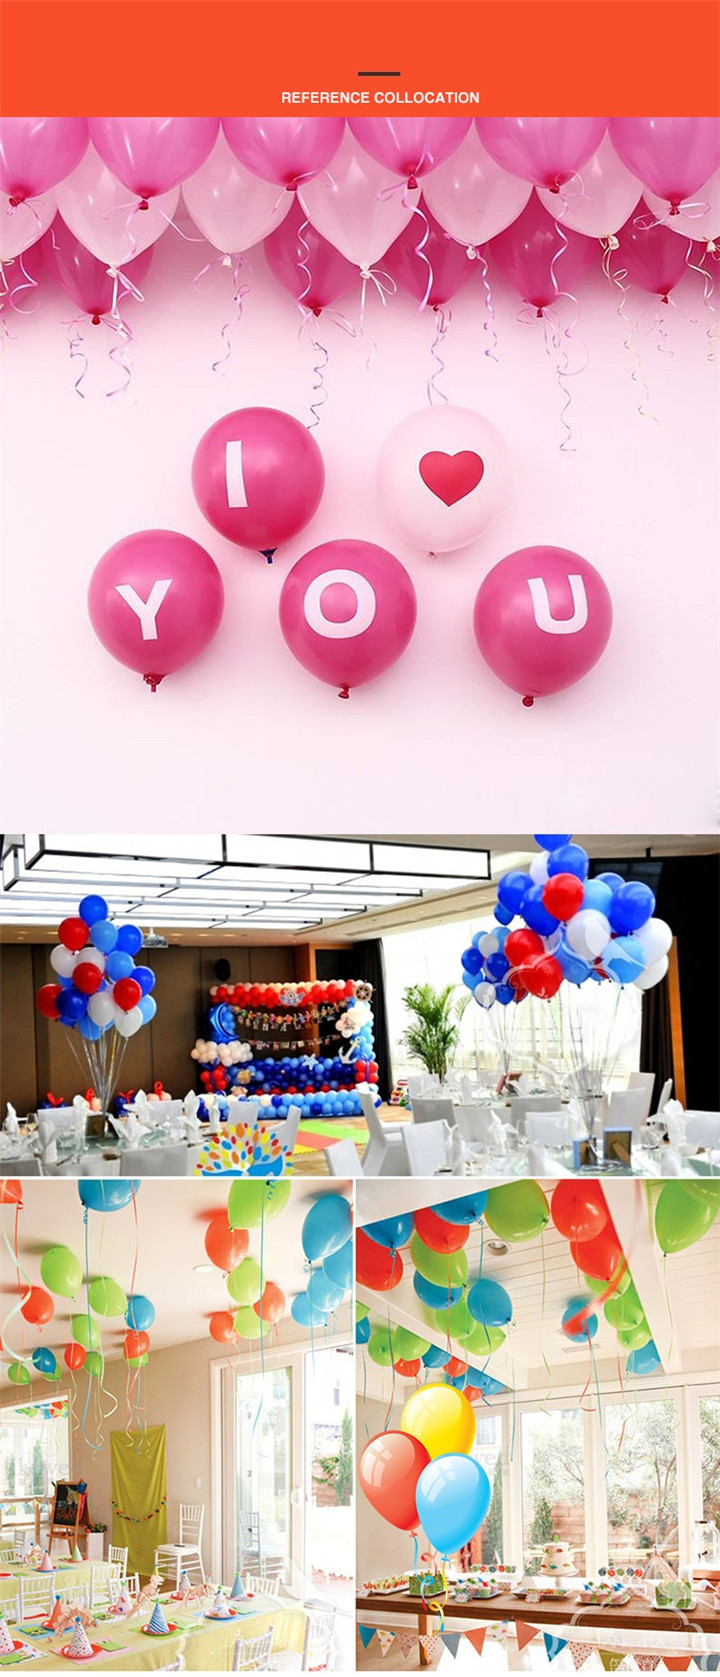 0.11    10pcslot 5mm10M Ribbon Wedding Decoration Birthday Party Supplie Diy Make Bows Gift Flowers Tie Bouquet Balloon Satin Ribbon